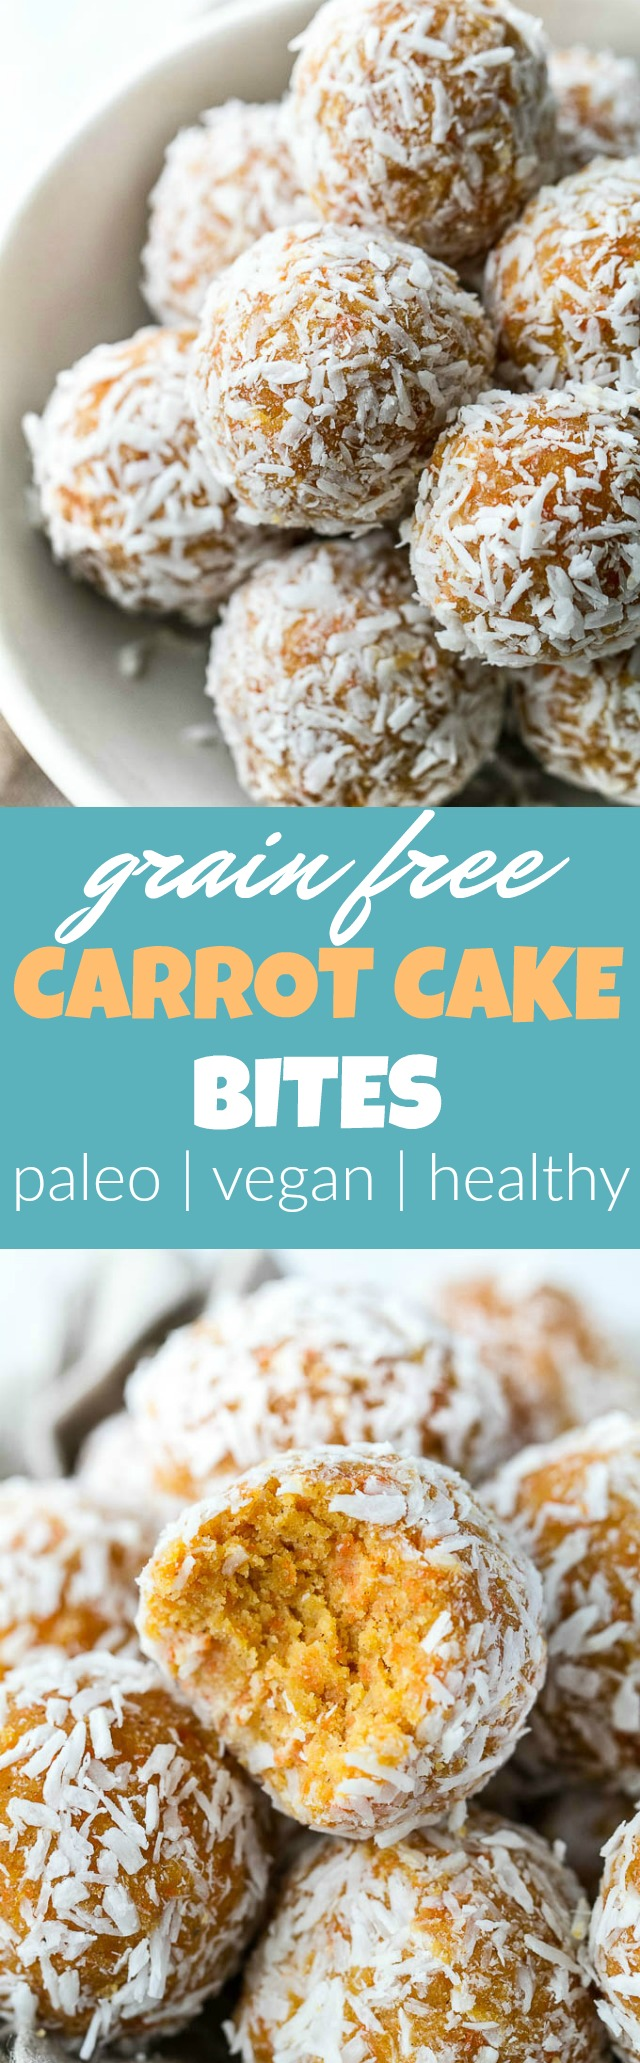 These Grain Free Carrot Cake Bites are paleo, vegan, refined sugar-free, and made with only 4 major ingredients! They're soft and doughy with a subtle sweetness and the perfect amount of spice. A perfect little healthy snack.   runningwithspoons.com #vegan #paleo #spring #glutenfree